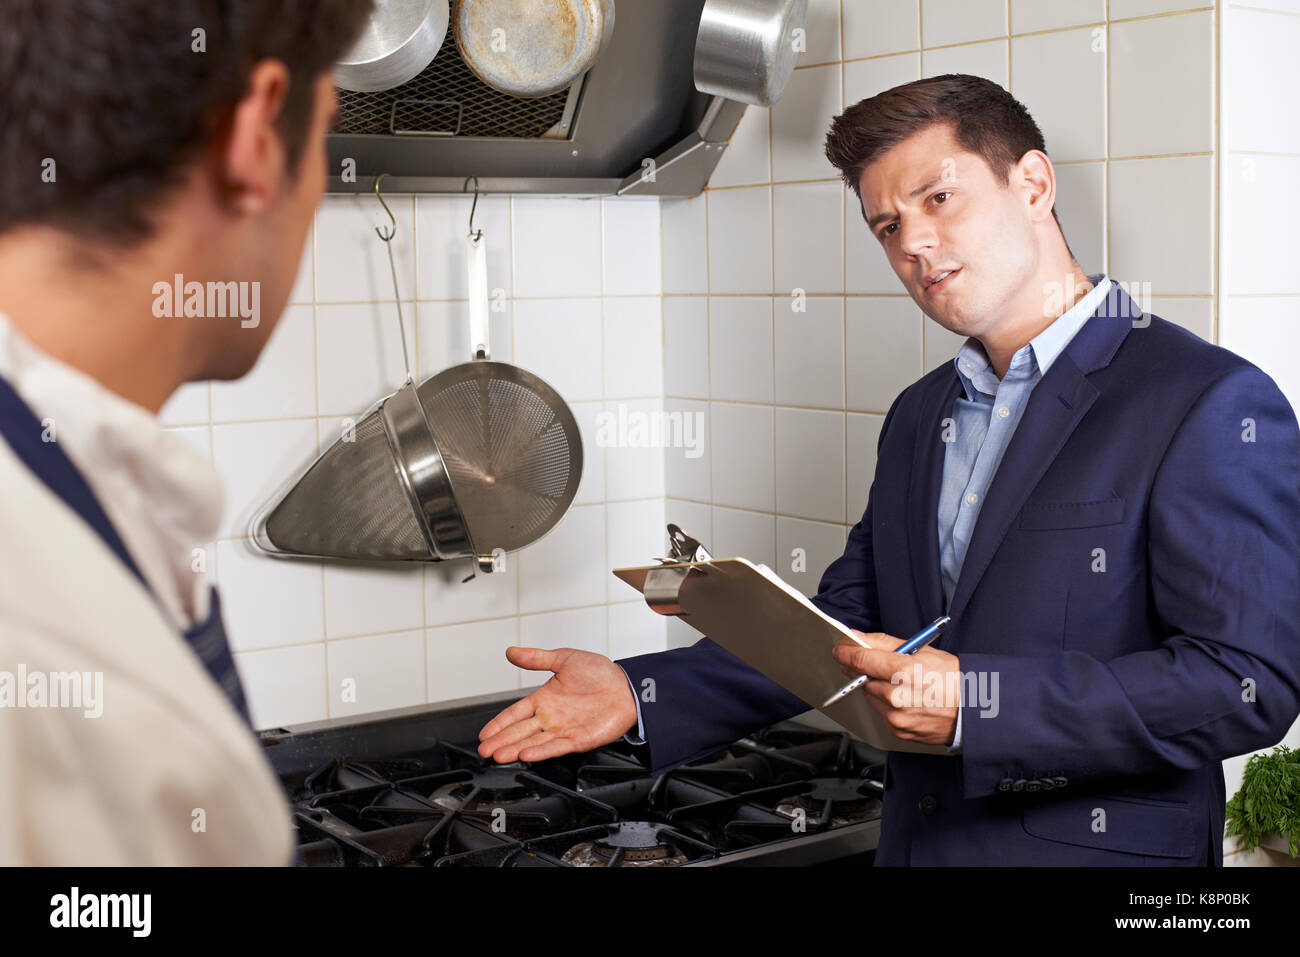 Health Inspector Meeting With Chef In Restaurant Kitchen - Stock Image